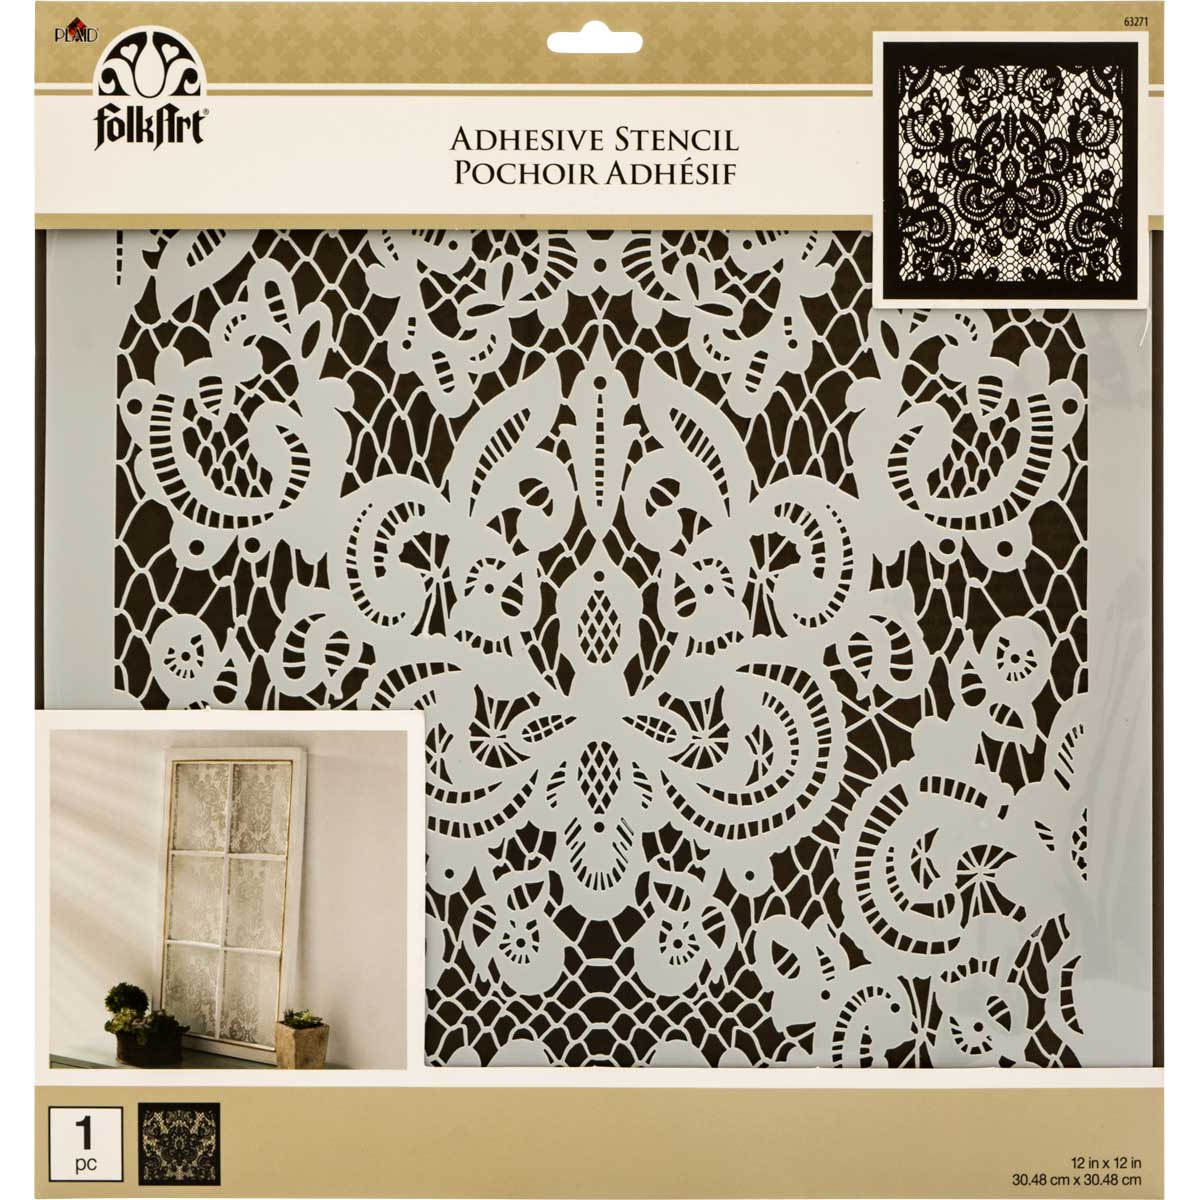 FolkArt ® Painting Stencils - Adhesive Laser - Delicate Lace